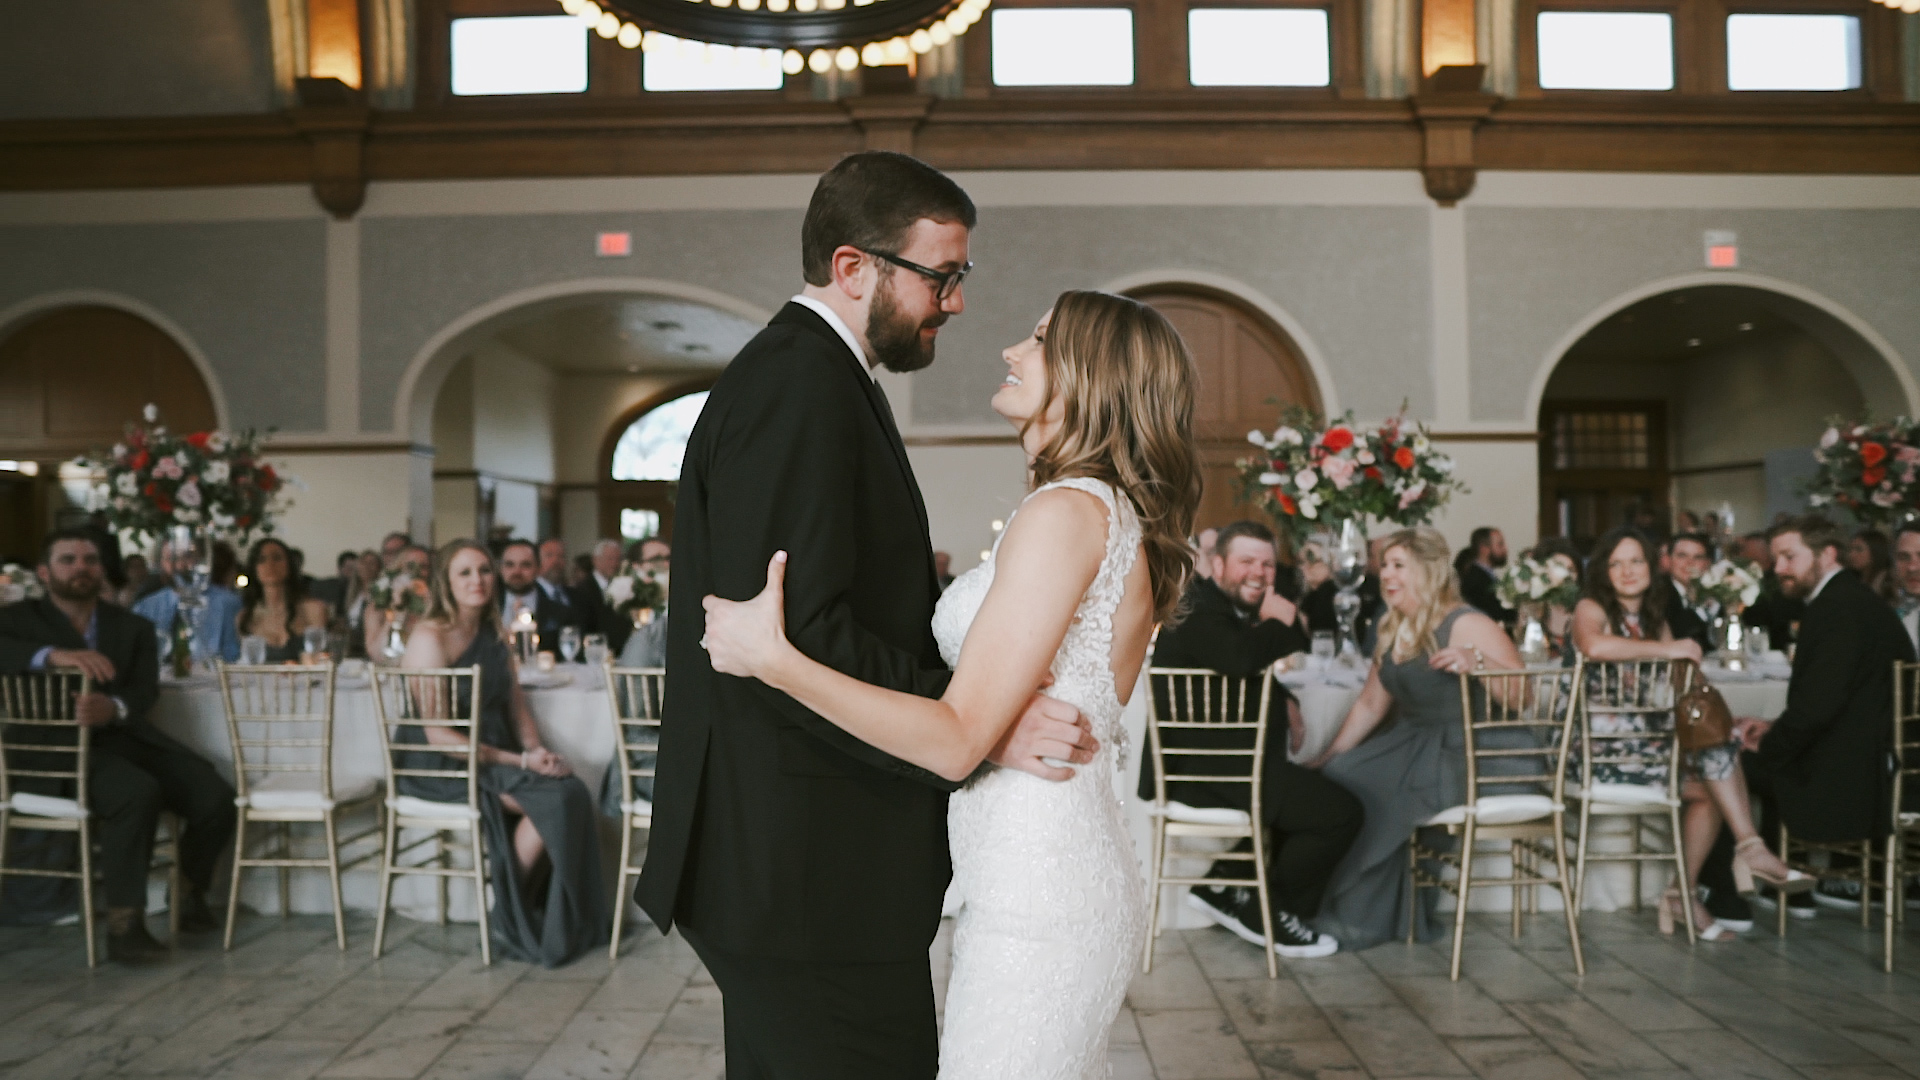 Katie + Jason | Fort Worth, Texas | The Ashton Depot